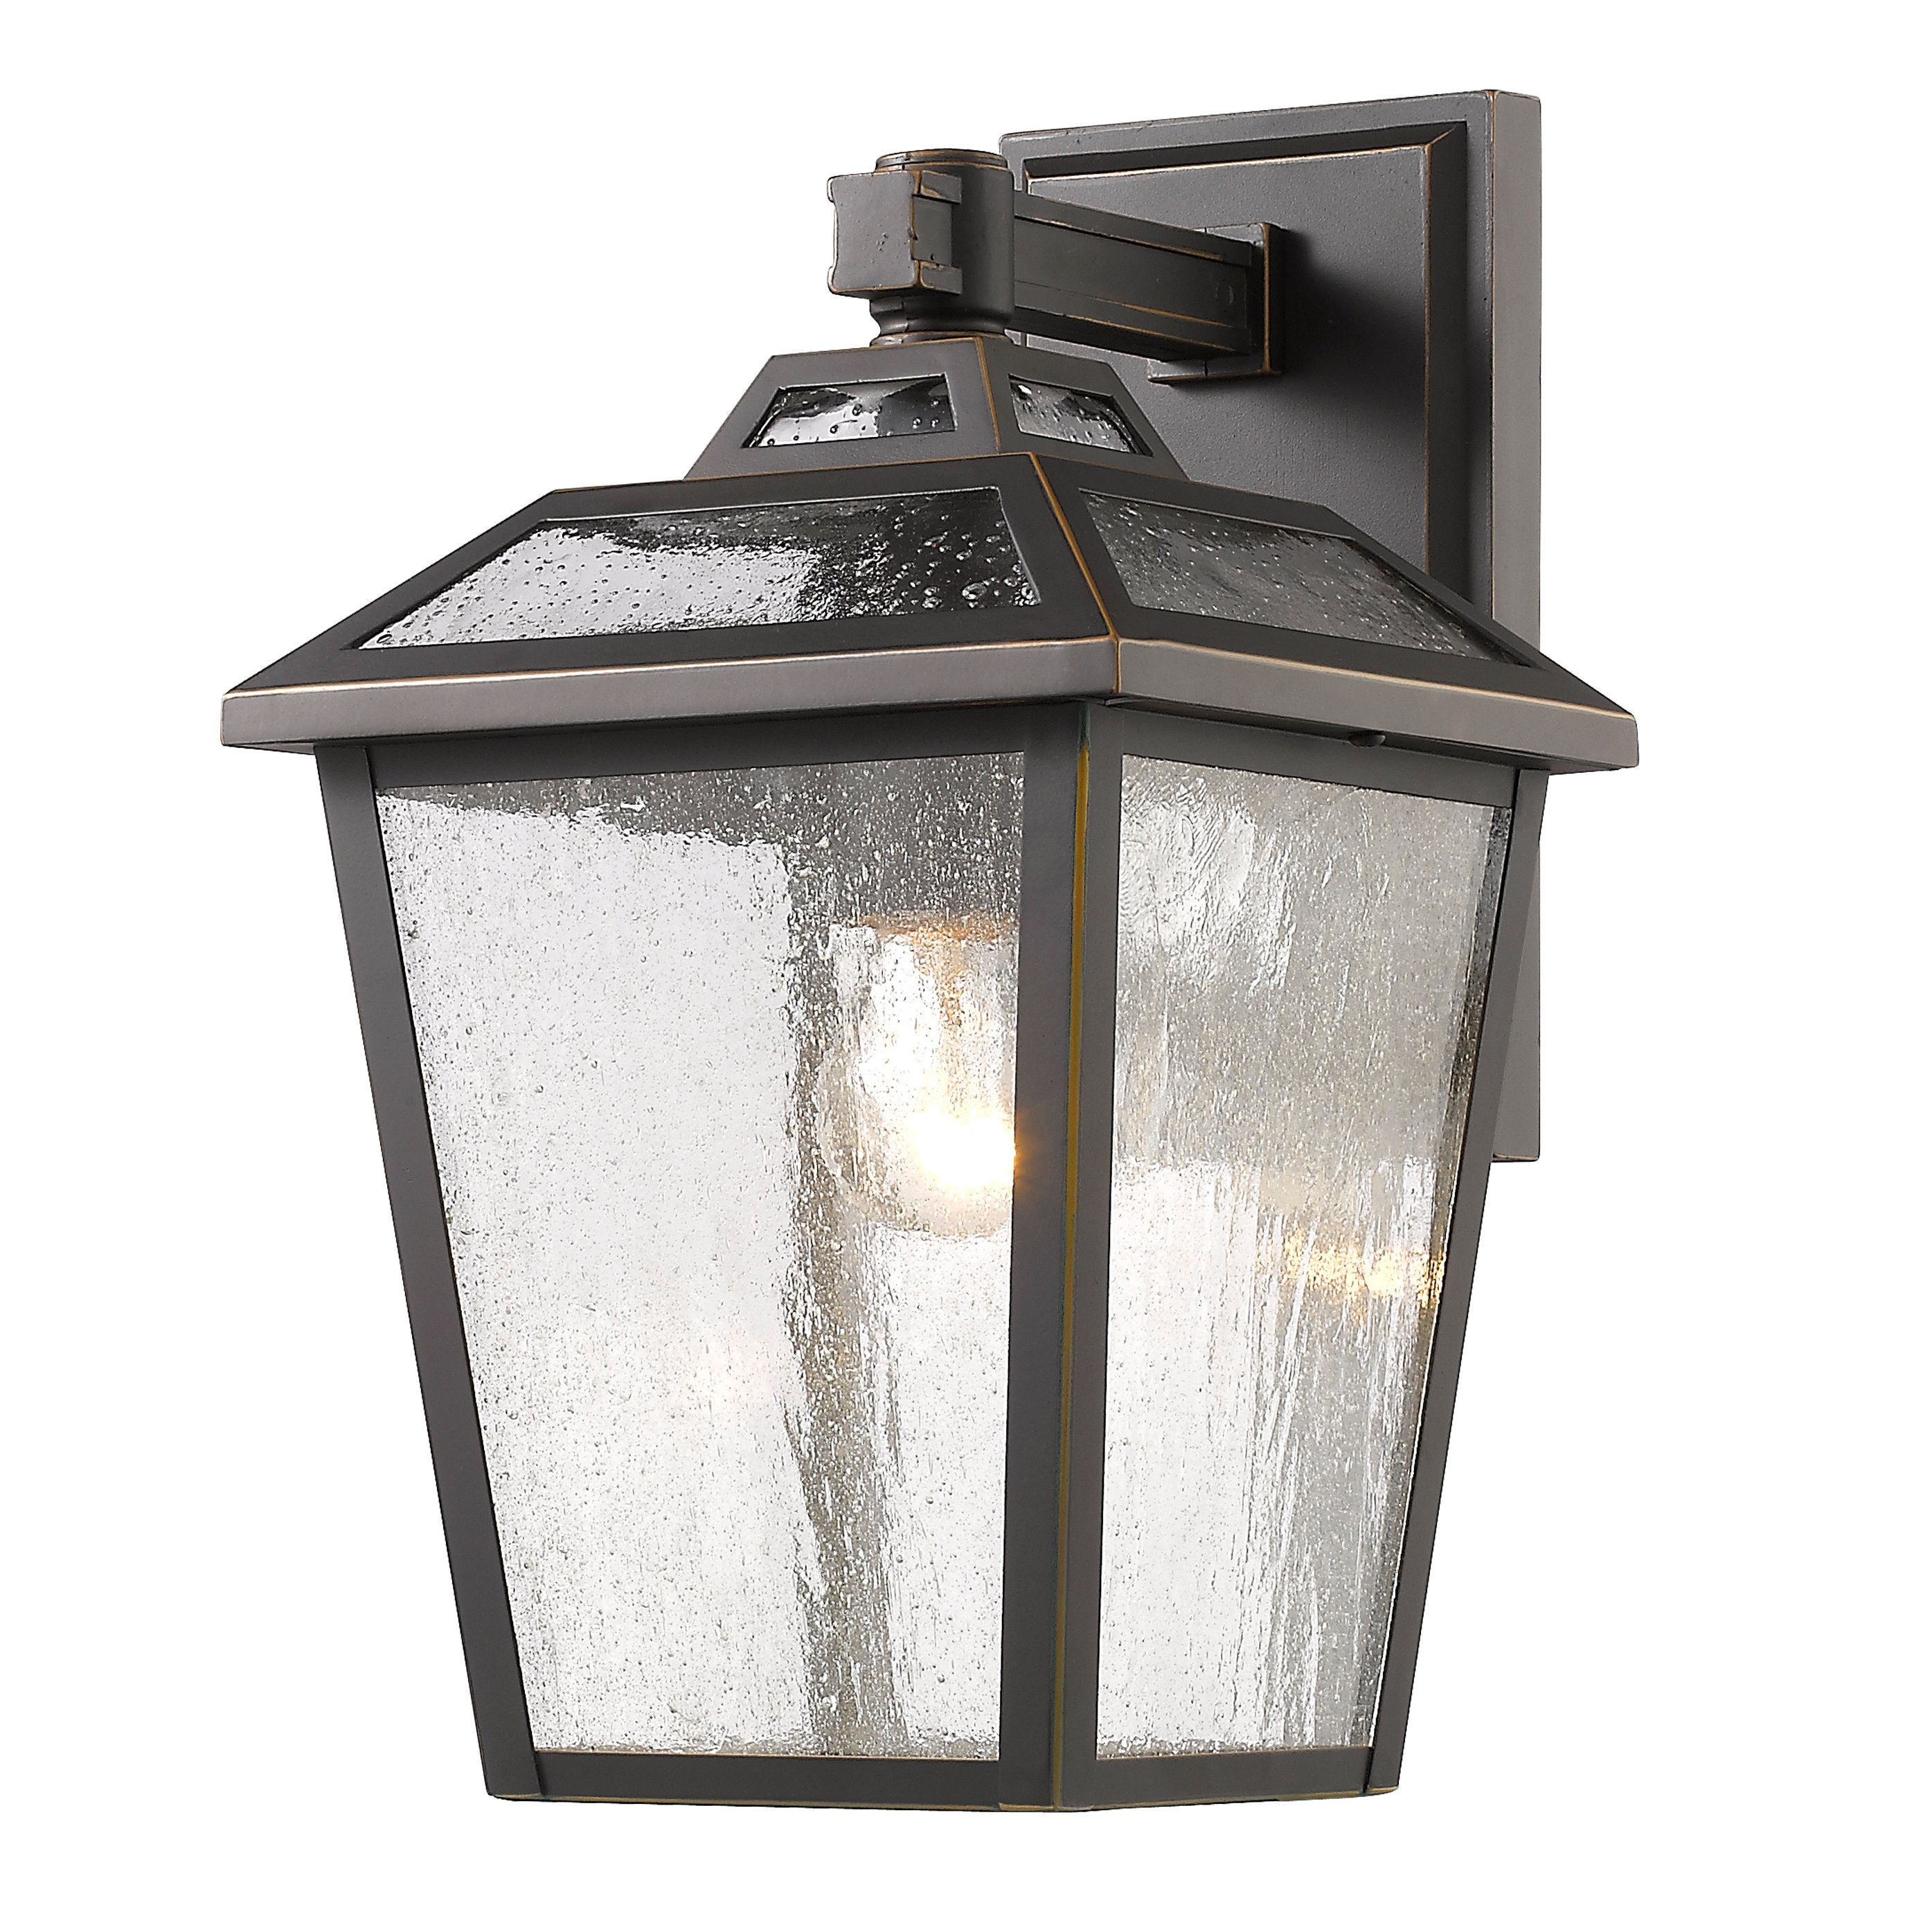 This Bayland wall light features clear seedy glass set against its oil rubbed bronze colored frame. A multi stepped top crowns this elegant fixture. This piece is constructed from high quality cast aluminum.